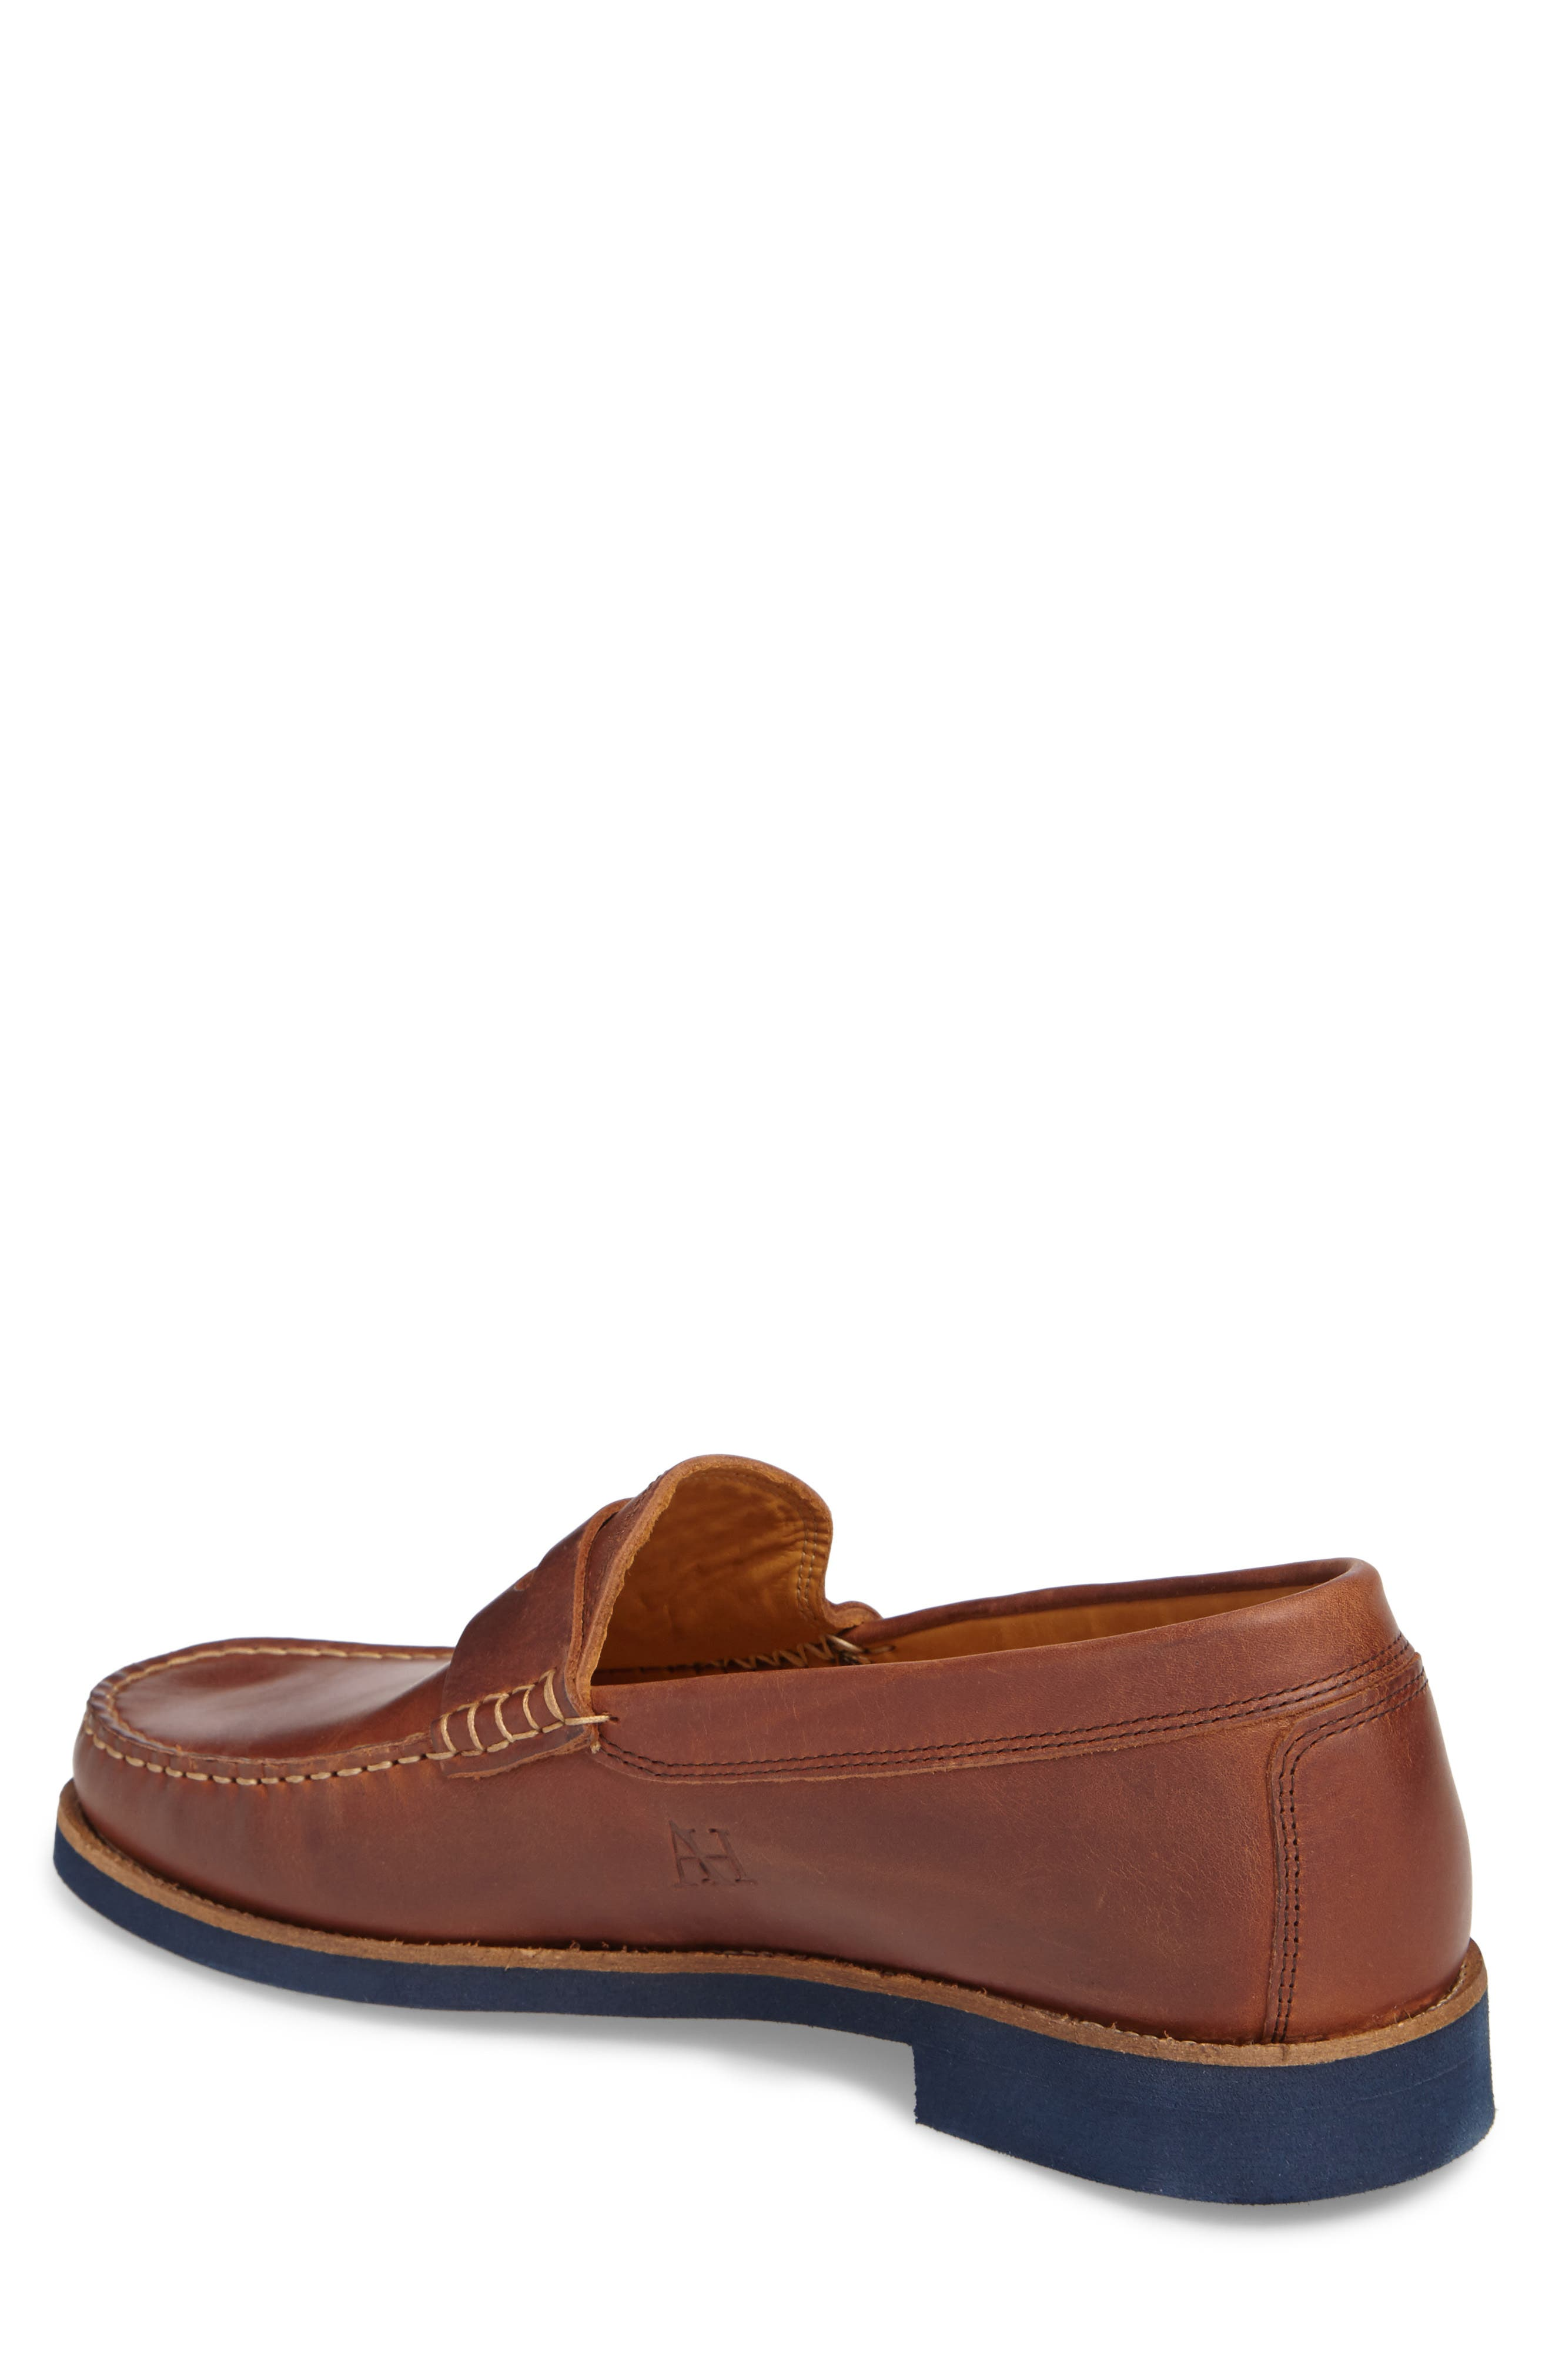 Lincolns Penny Loafer,                             Alternate thumbnail 2, color,                             LIGHT BROWN